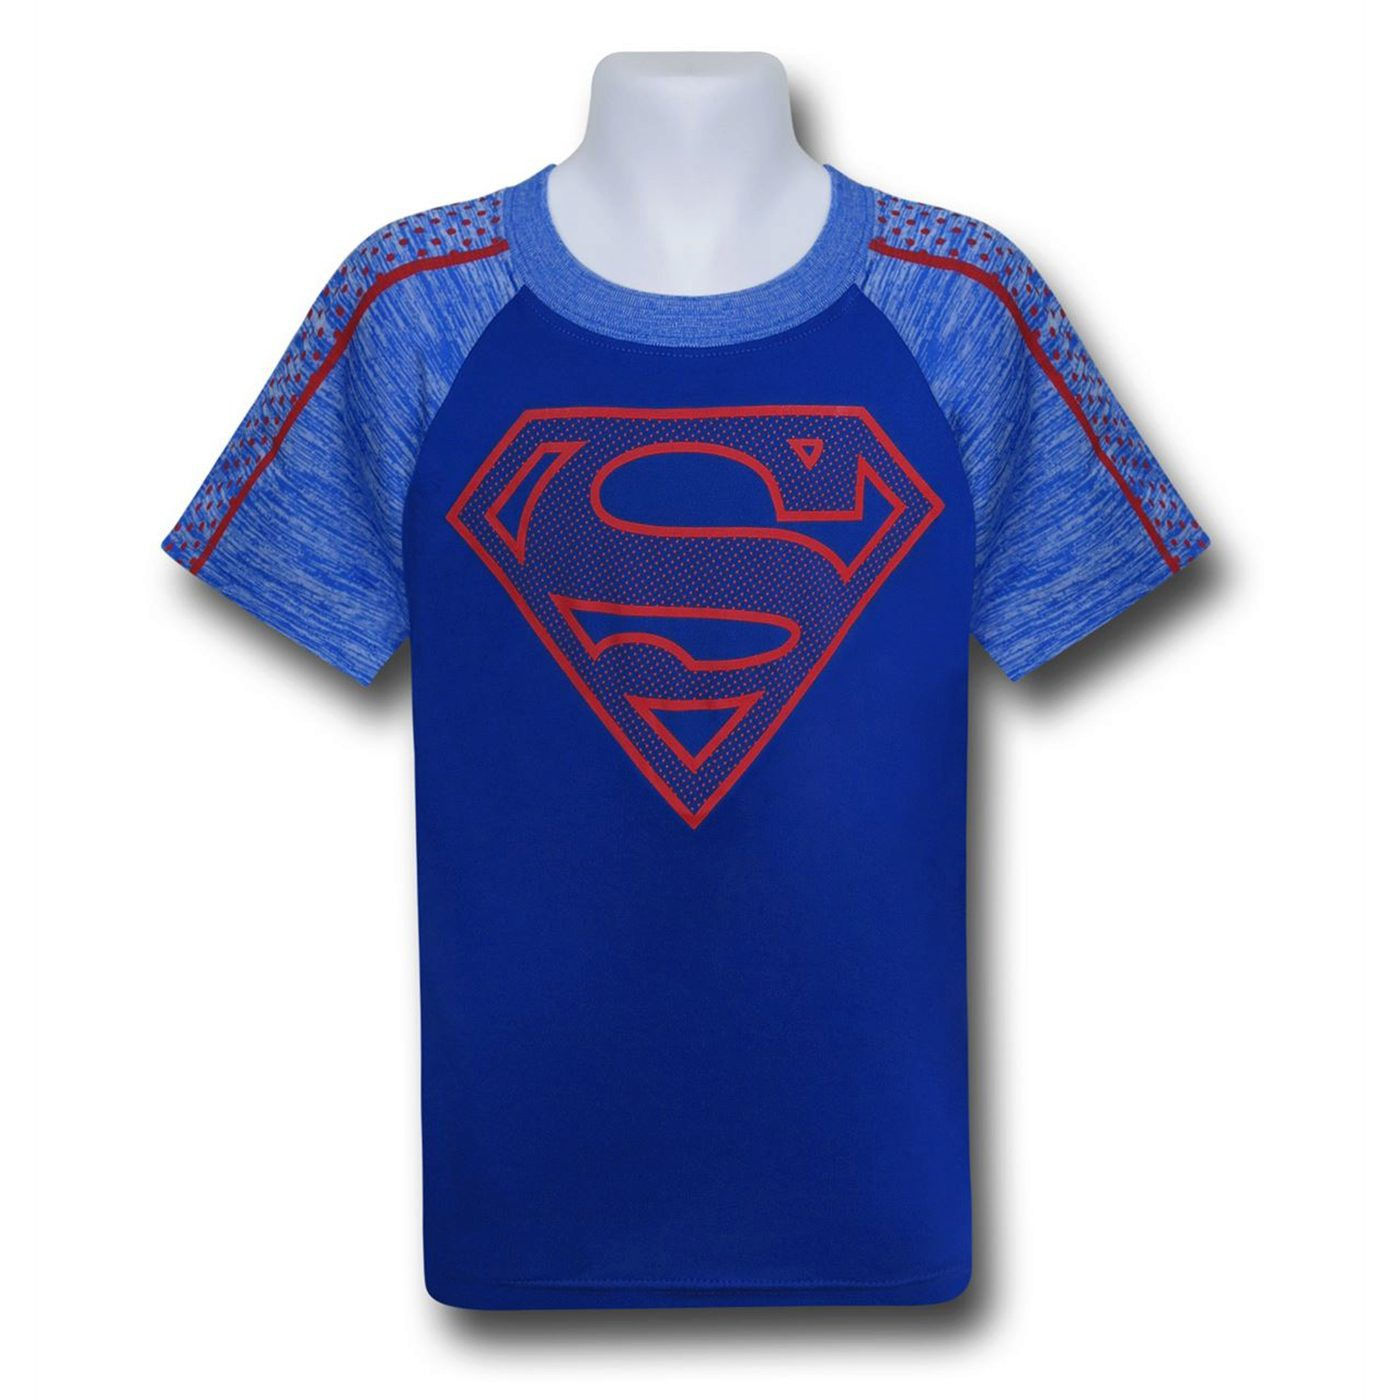 Superman Kids Symbol on Blue Space Dye T-Shirt